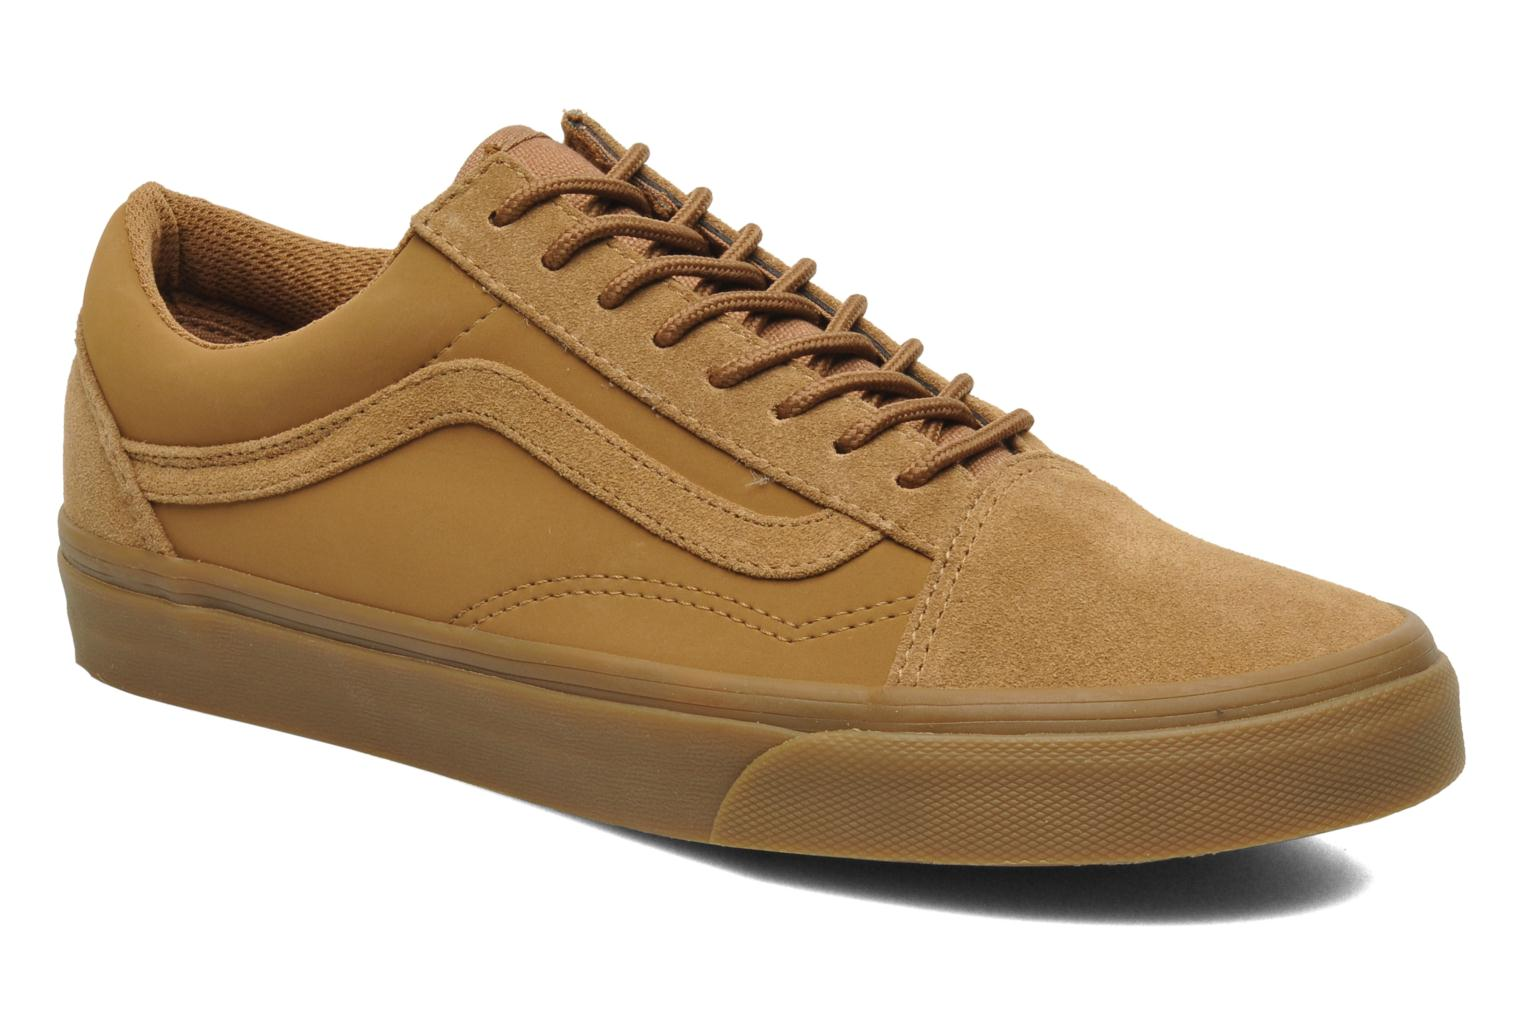 vans old skool trainers in beige at 197787. Black Bedroom Furniture Sets. Home Design Ideas